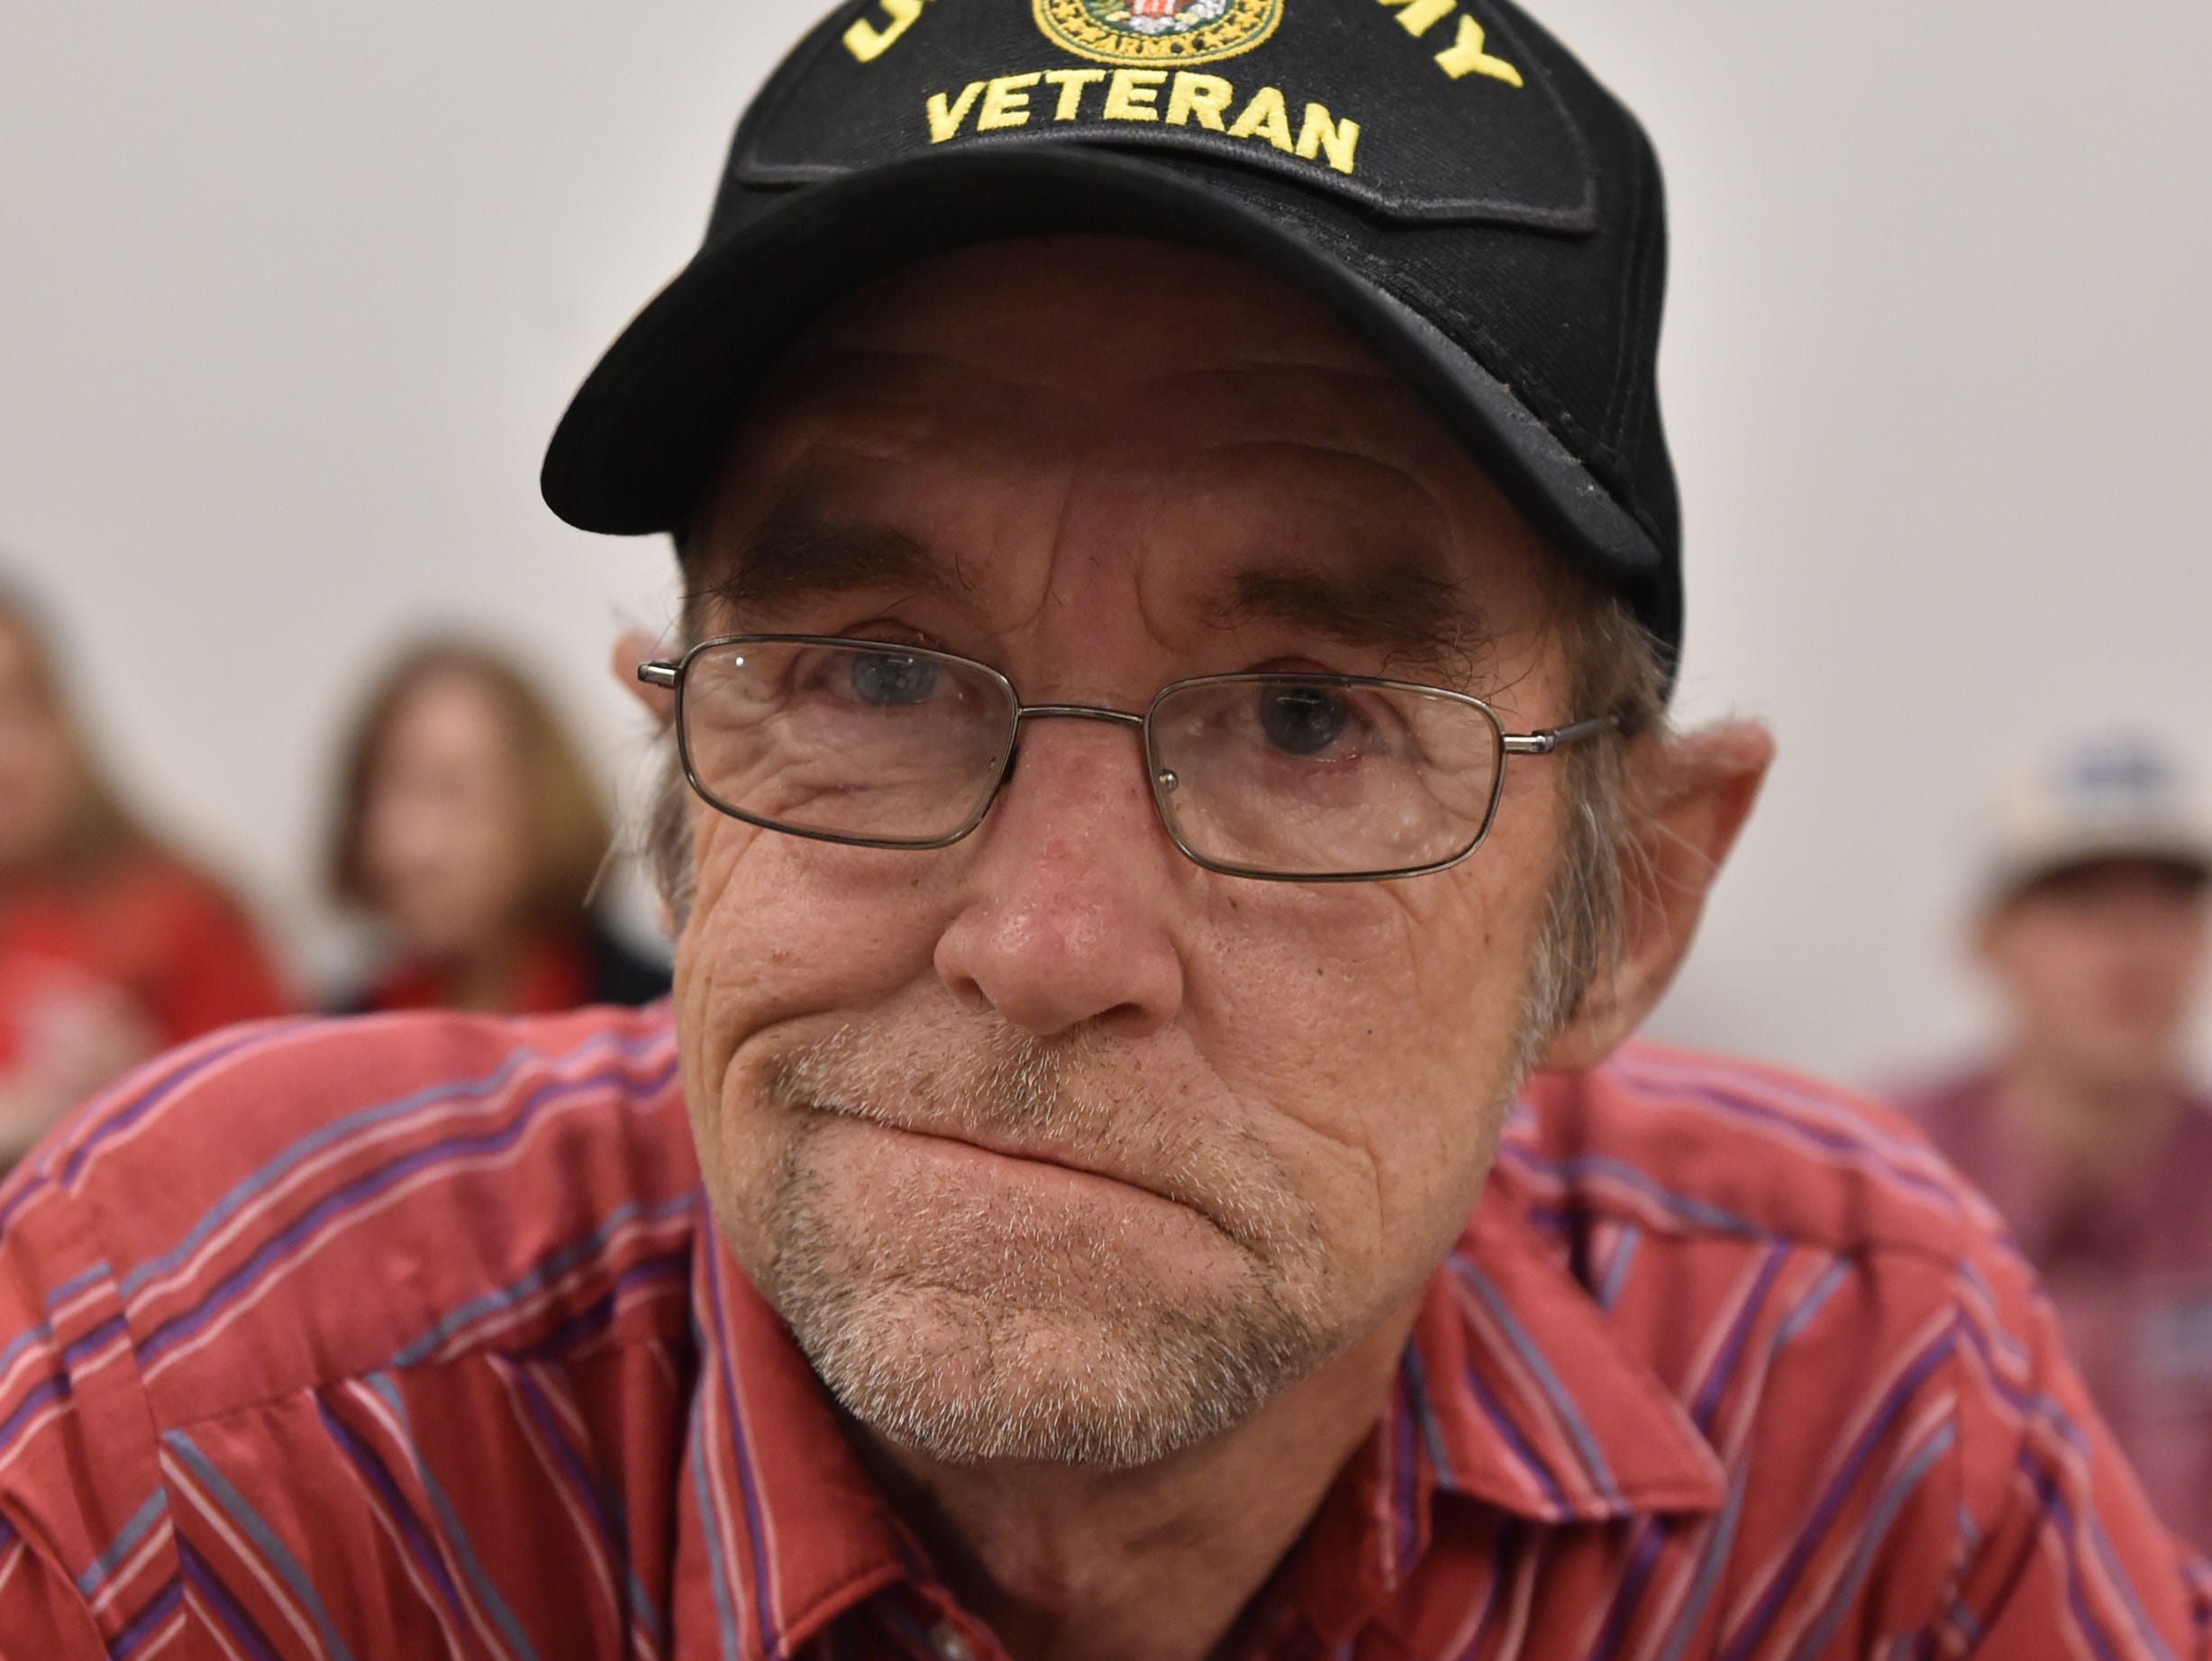 Wayne Turner, a U.S. Army veteran from Raymond awaits the arrival of incumbent U.S. Sen. Cindy Hyde-Smith to the watch party held in her honor at the Westin Hotel of downtown Jackson. A supporter of Hyde-Smith since her appointment to the senate by Miss. Gov. Phil Bryant, Turner says of Hyde-Smith's run for senate, 'If it ain't broke, don't fix it'. Jackson, Miss. Tuesday, Nov. 27, 2018.